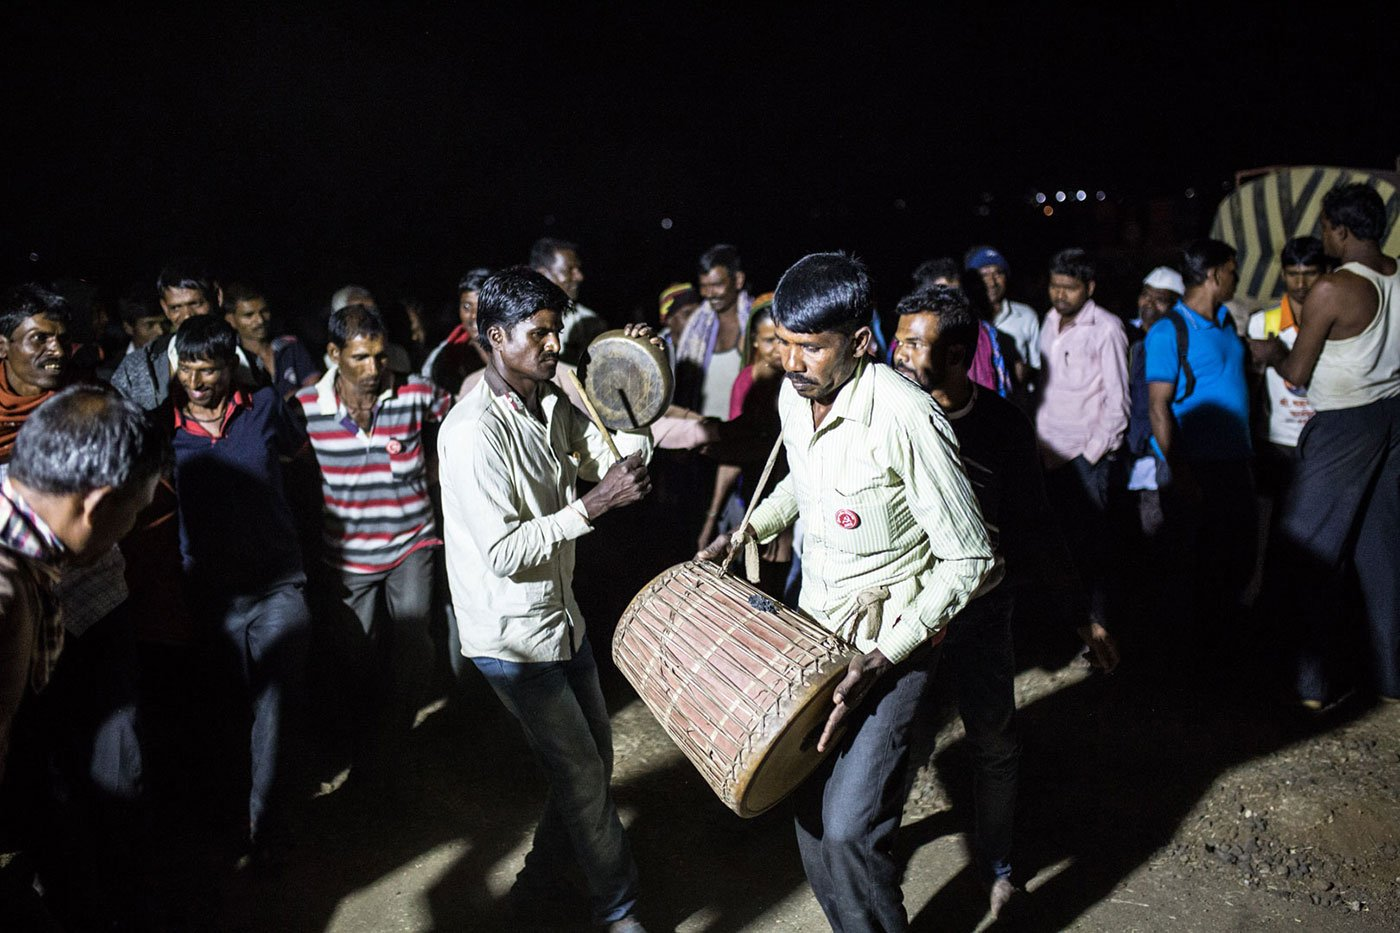 After a long day of walking, some farmers sing and dance at night; others like Waghere are exhausted; soon, everyone rests for the night under the open sky. Credit: Shrirang Swarge/People's Archive of Rural India